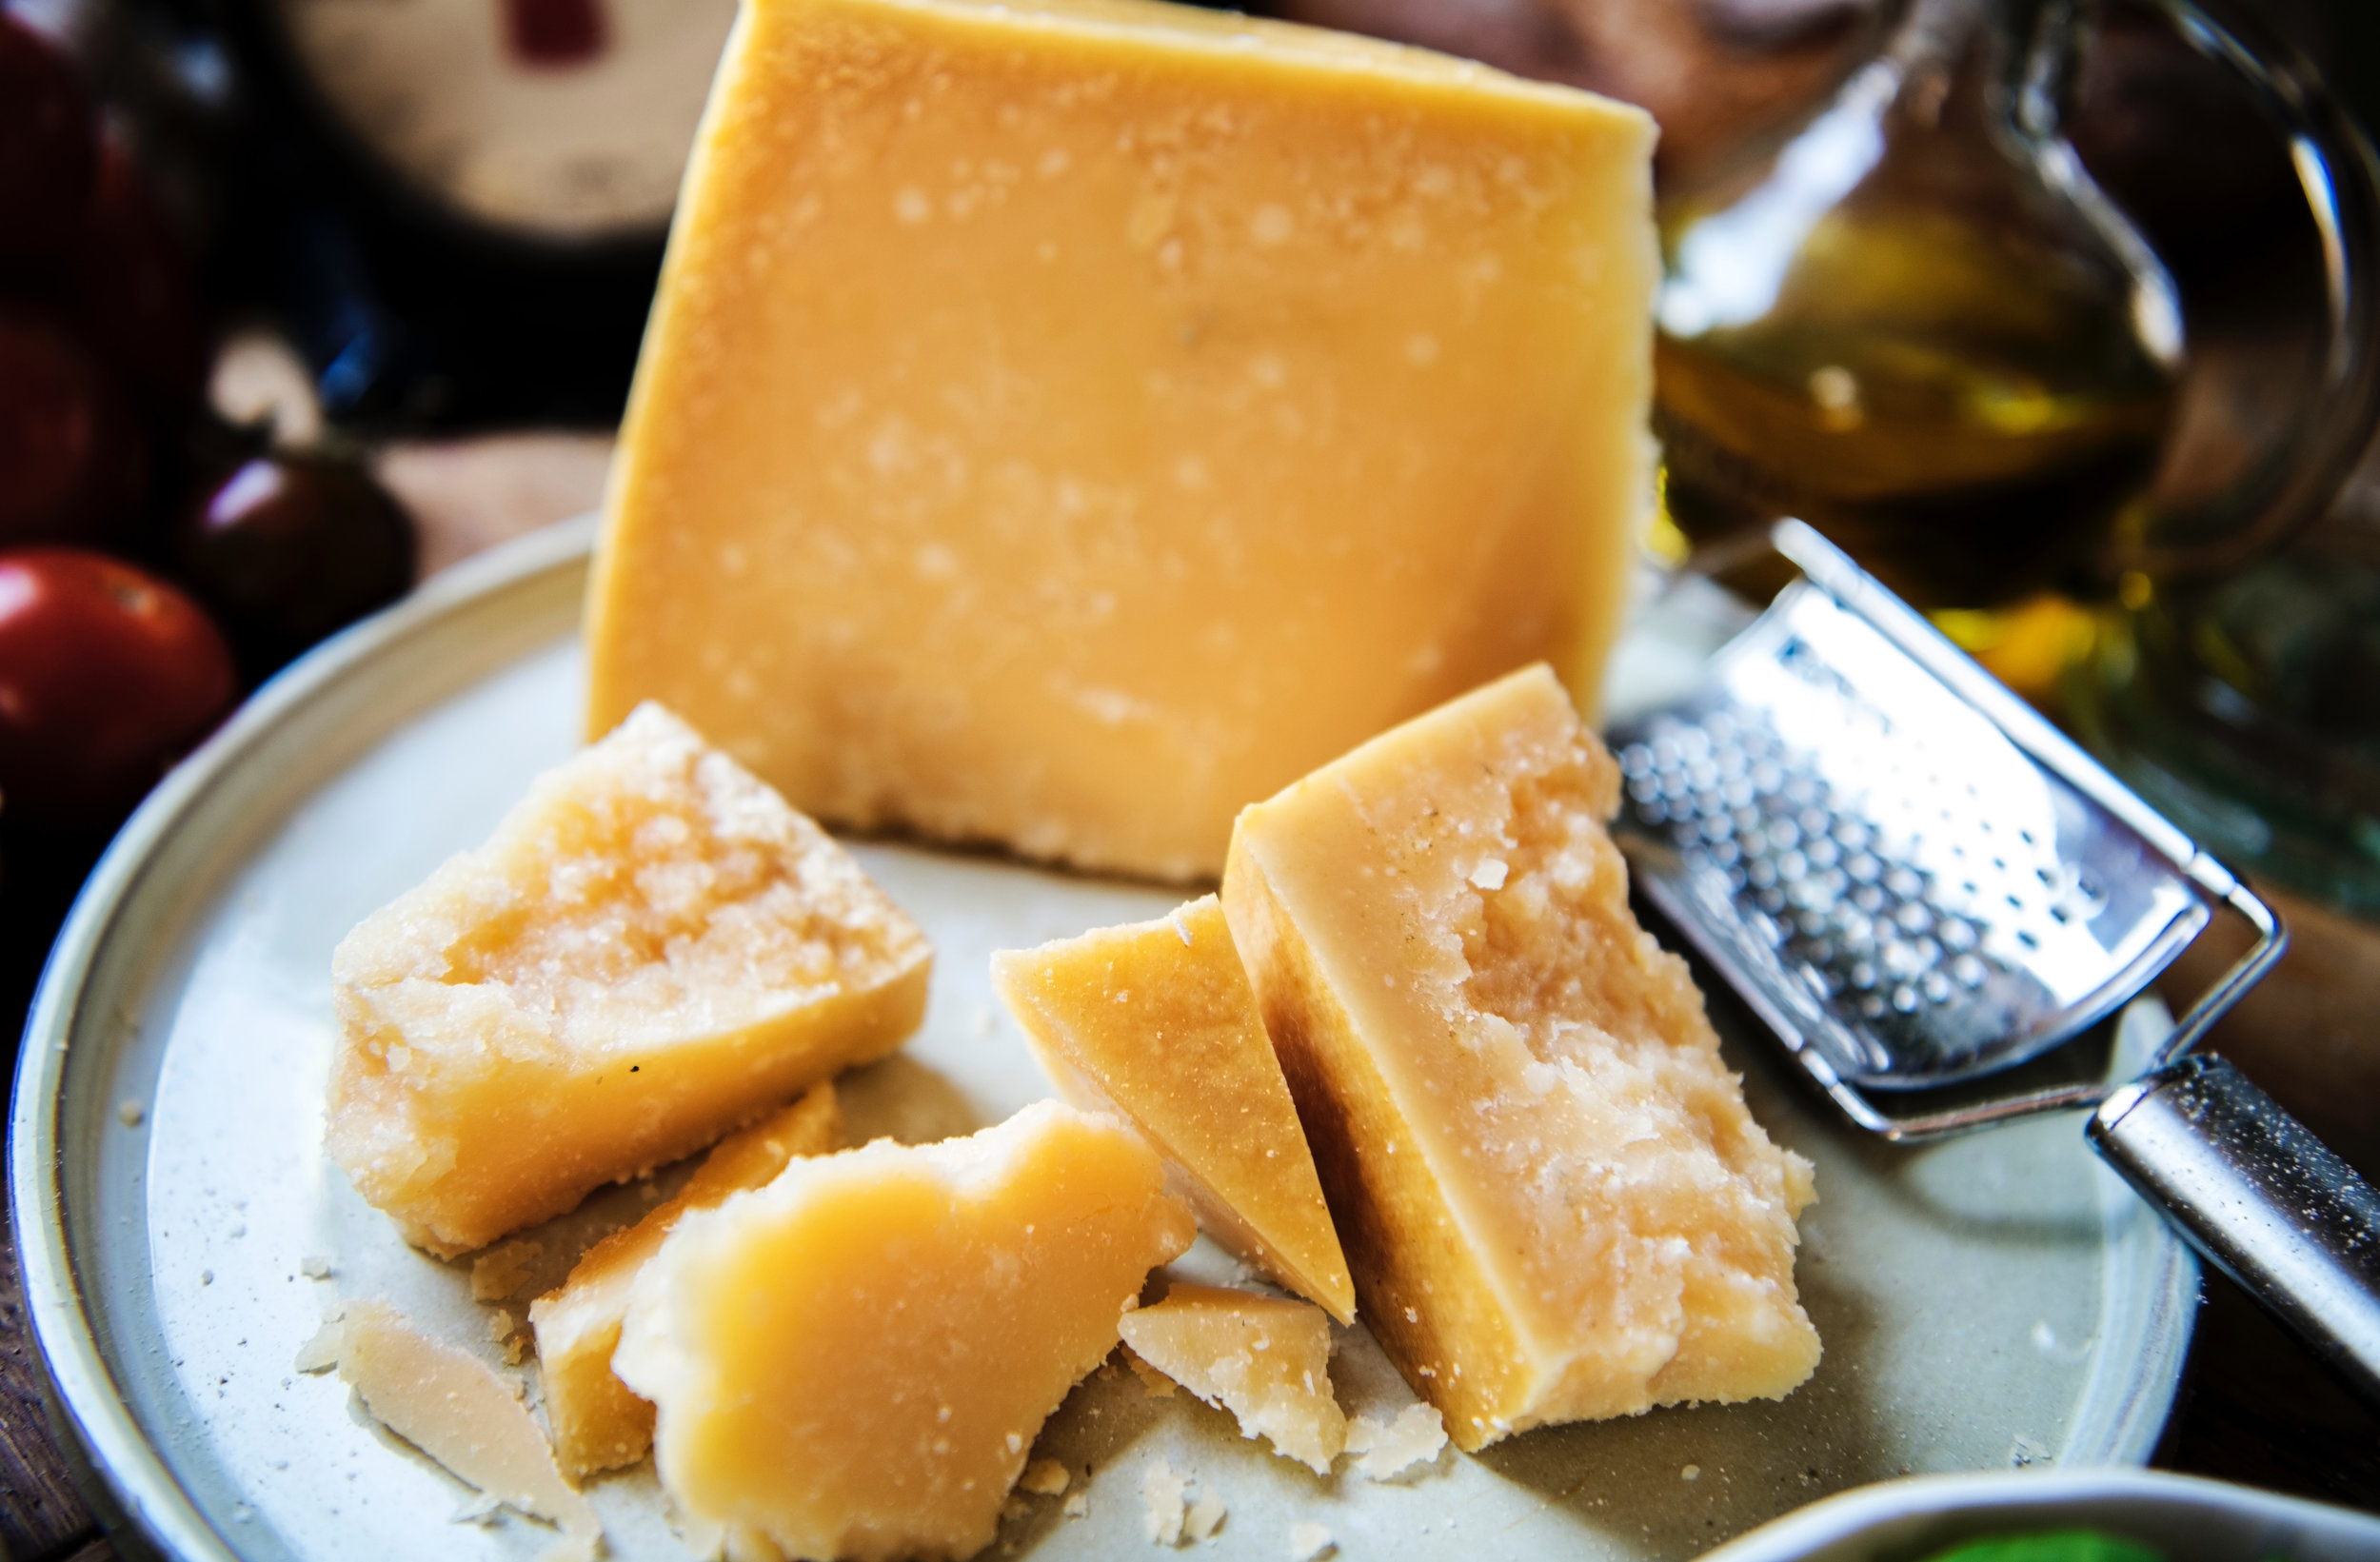 cheese-close-up-dairy-product-1435184-1.jpg